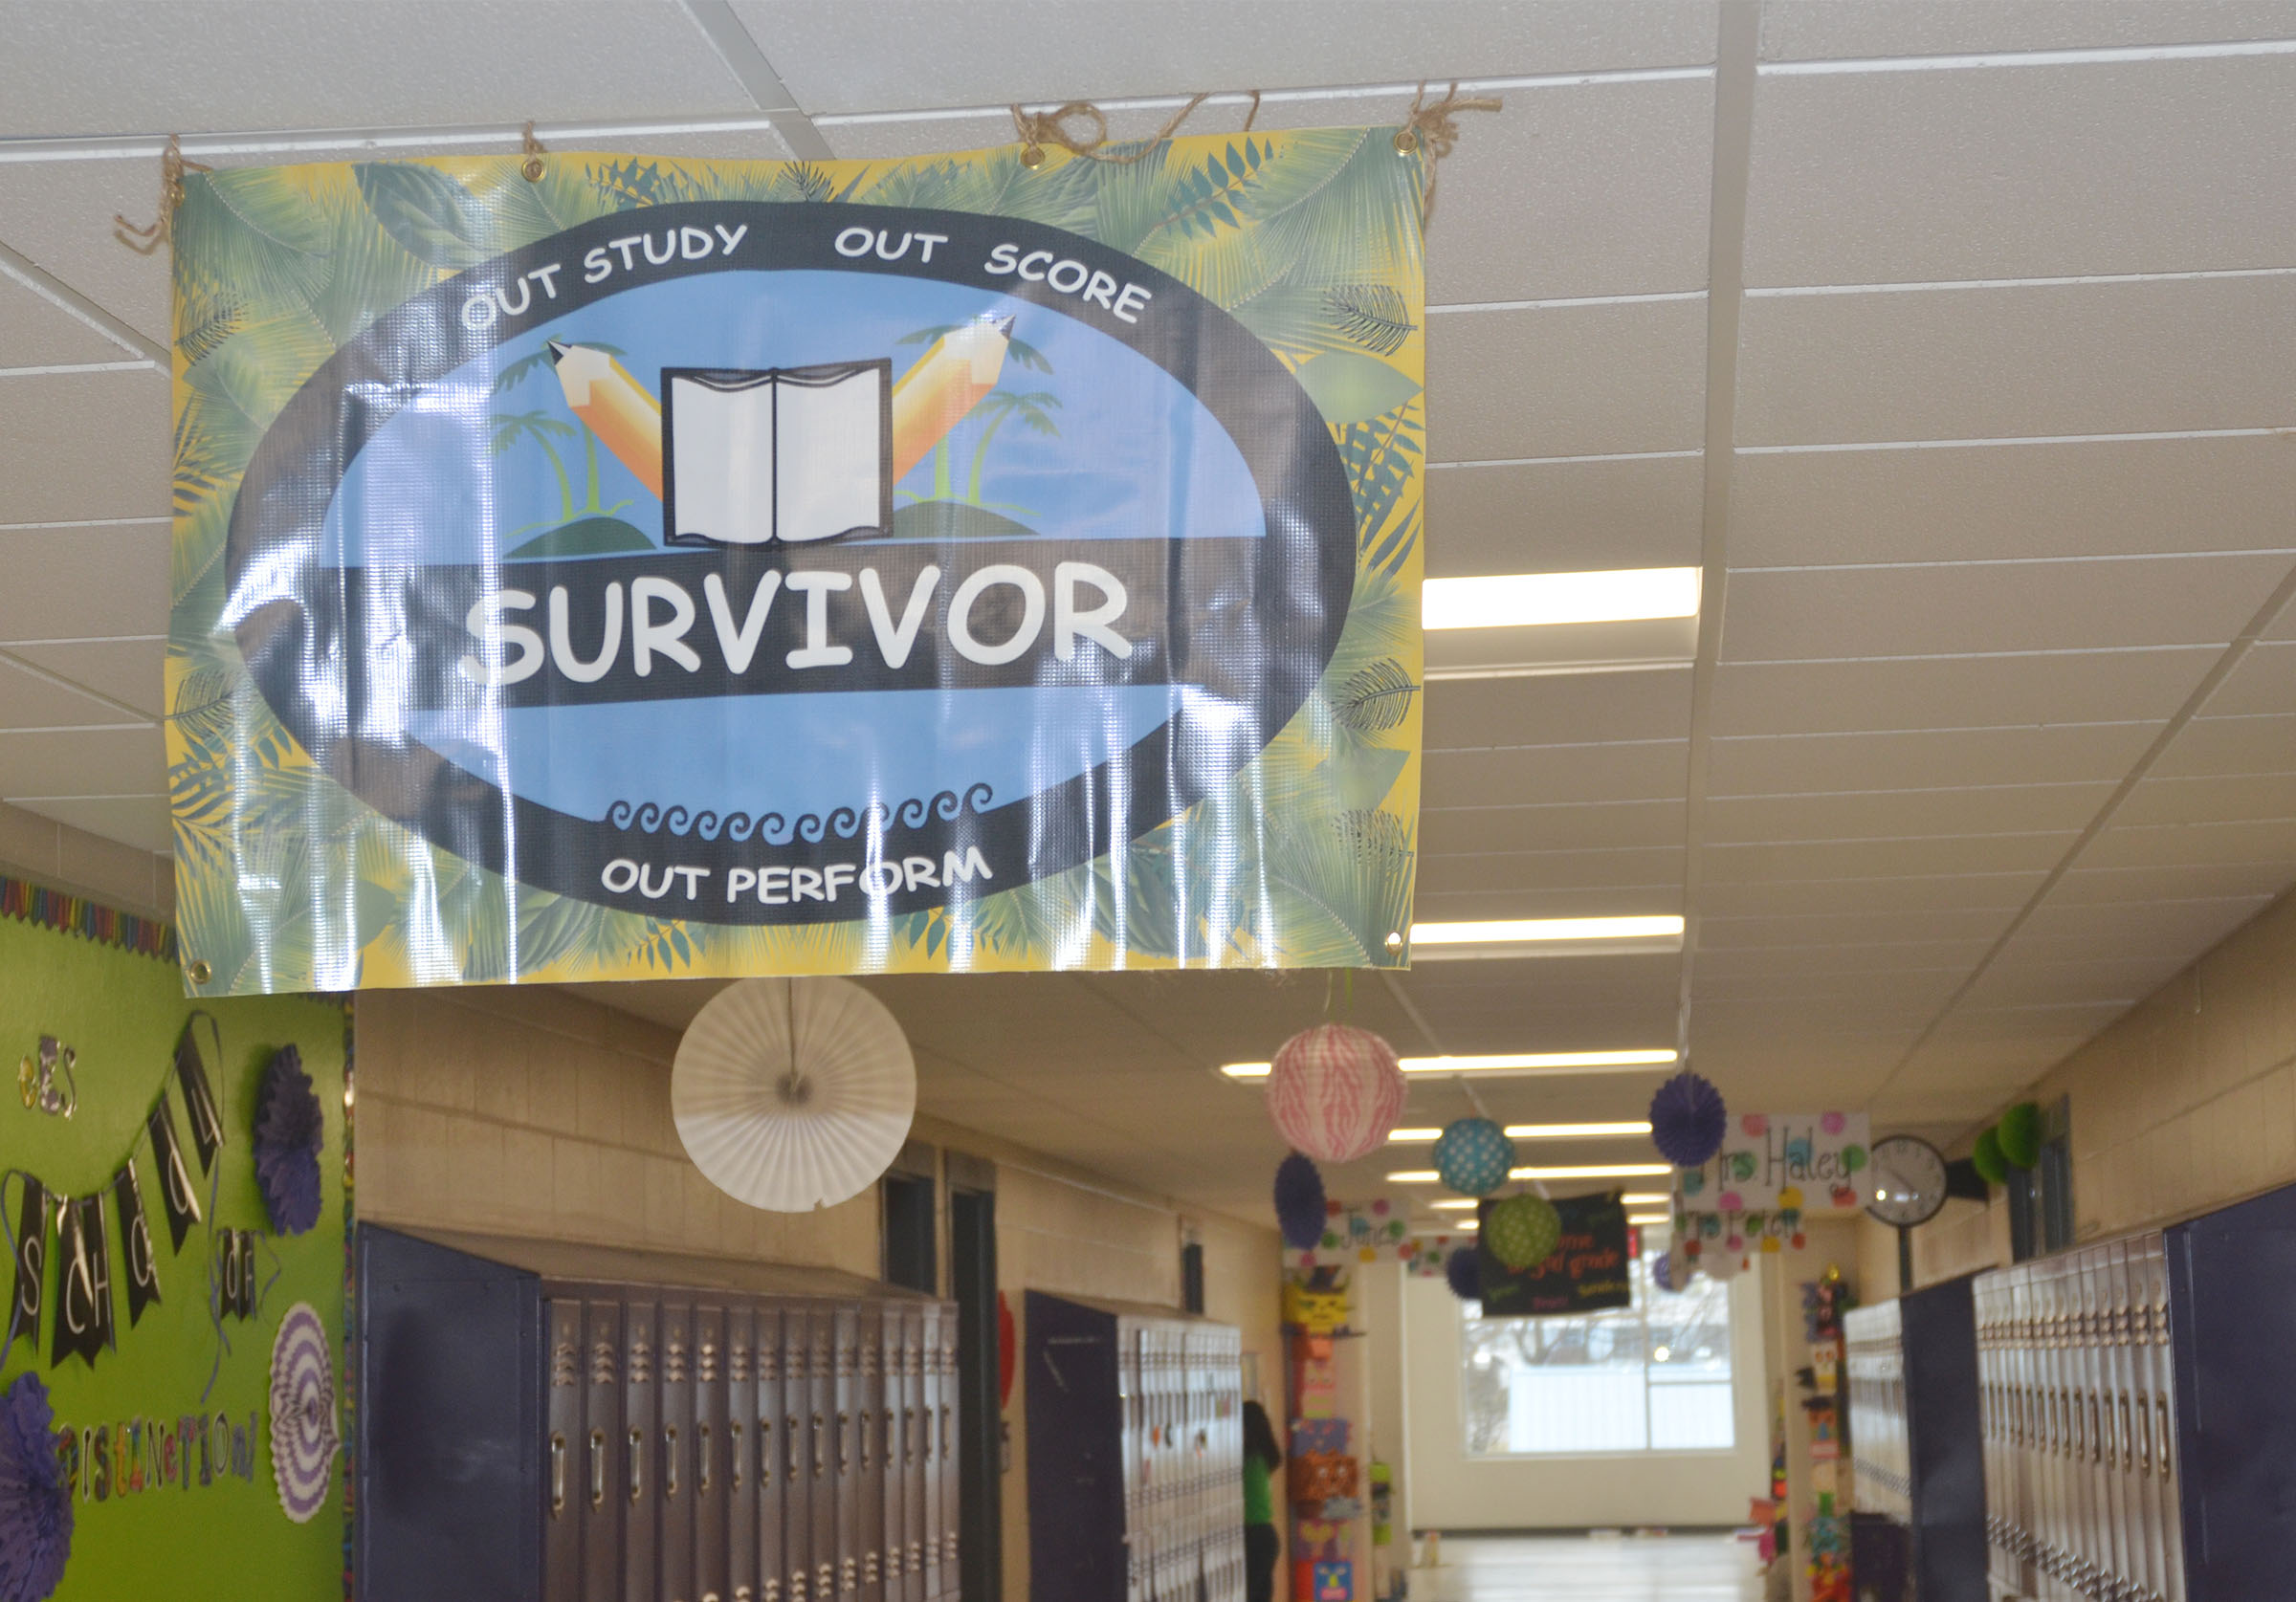 "This year's testing theme at Campbellsville Elementary School is ""Survivor: Out Study, Out Score, Out Perform."""